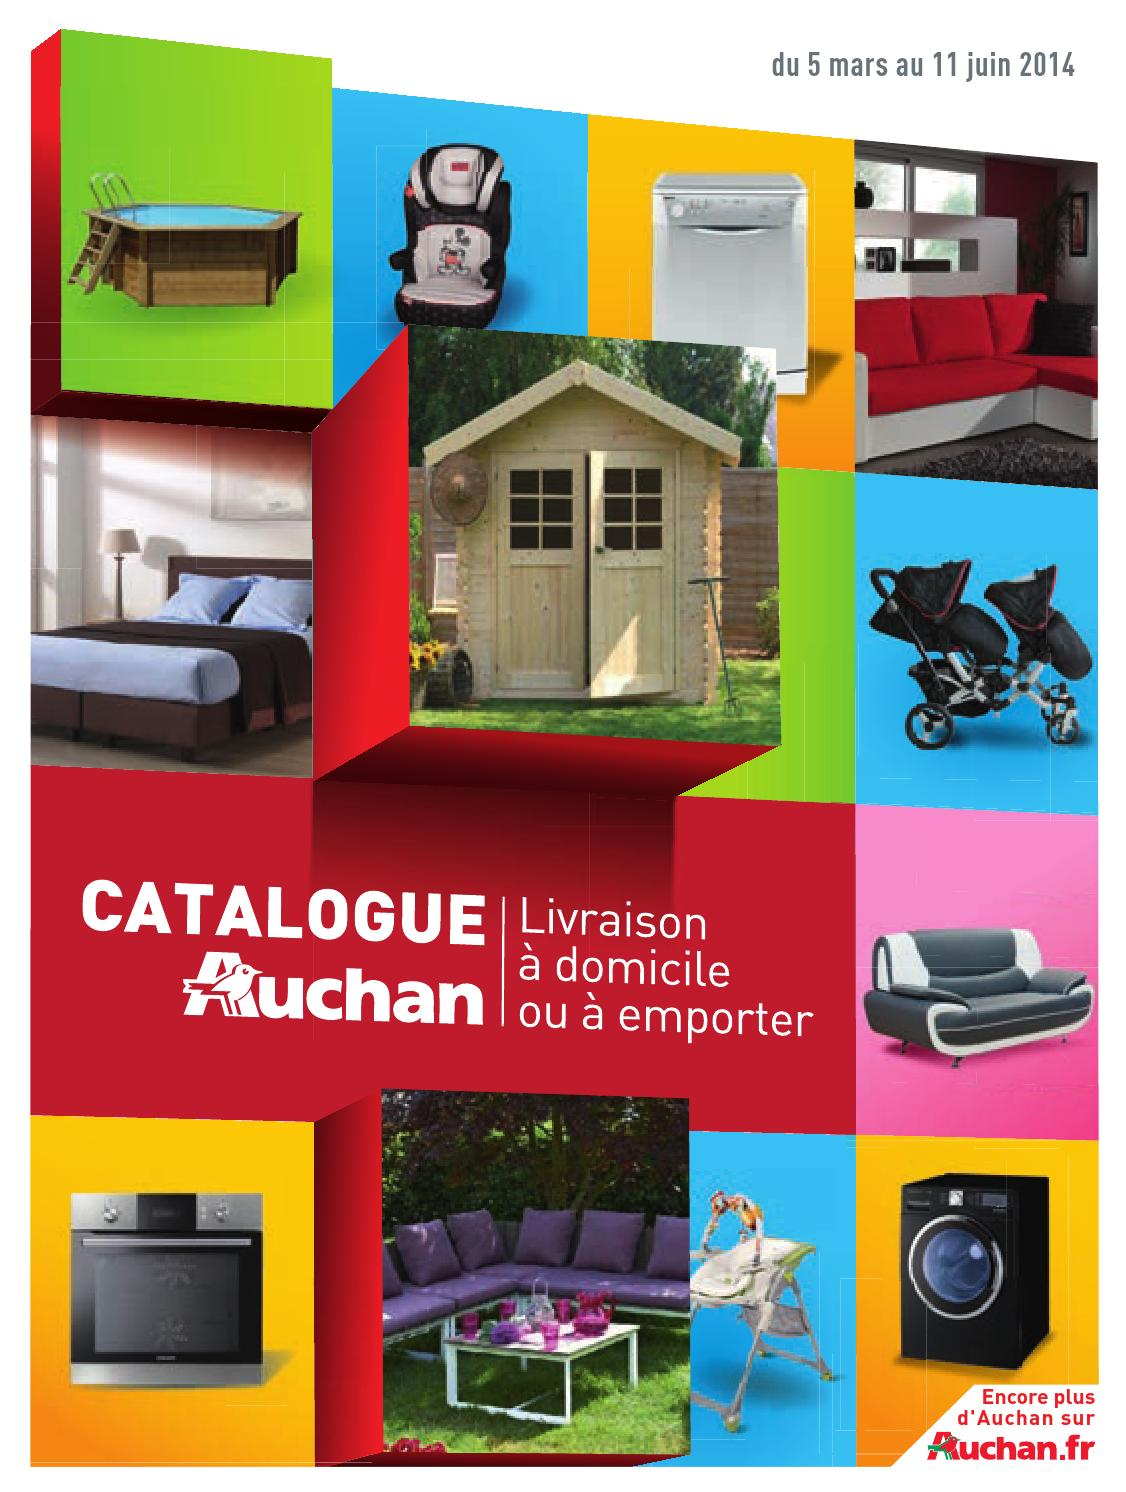 catalogue auchan by joe monroe issuu. Black Bedroom Furniture Sets. Home Design Ideas